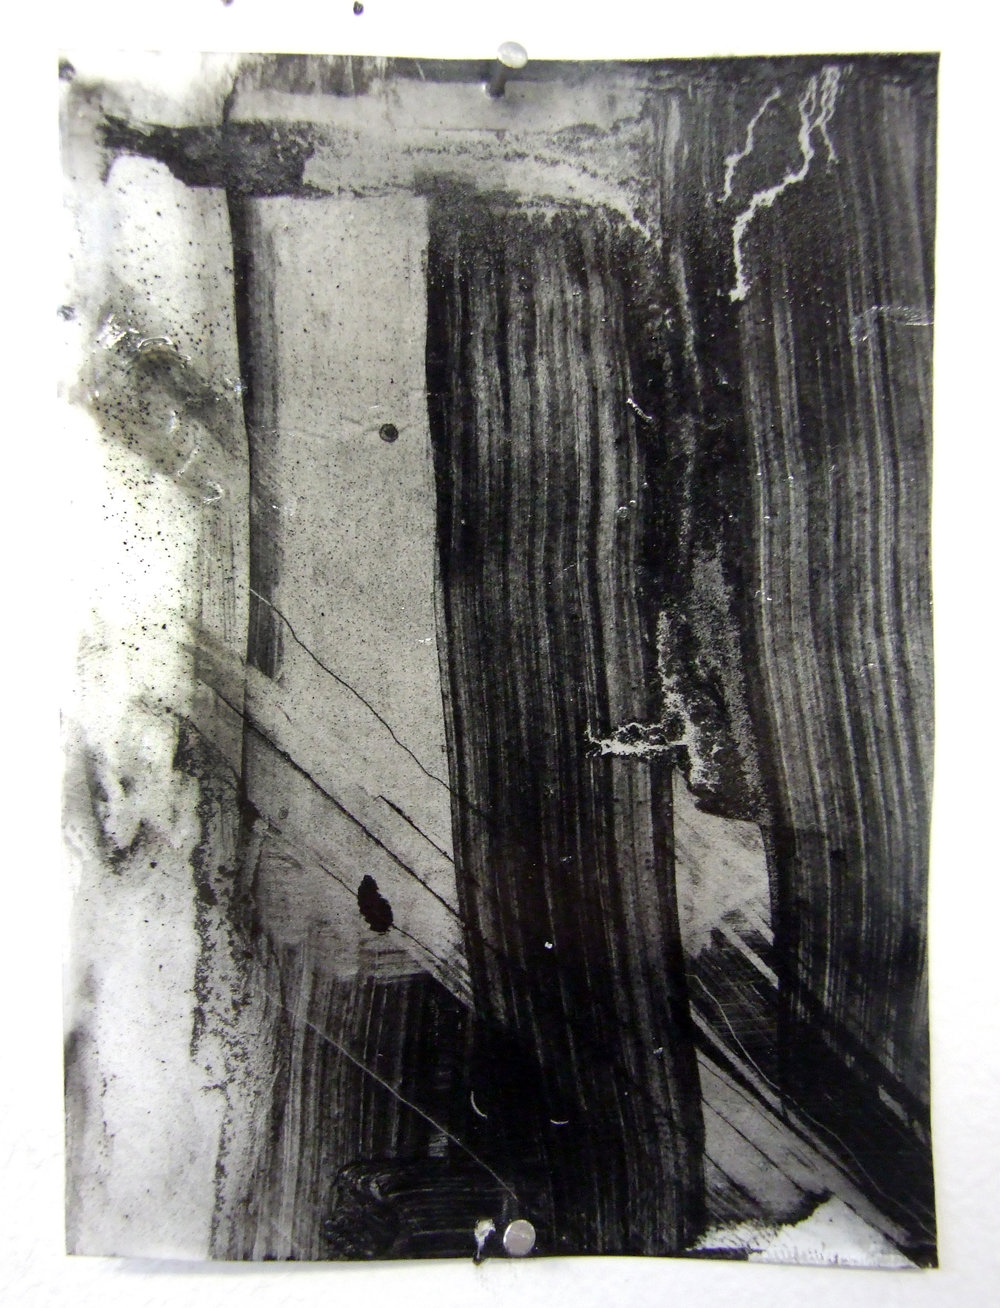 N.o 2, charcoal and gesso on mylar, 2012